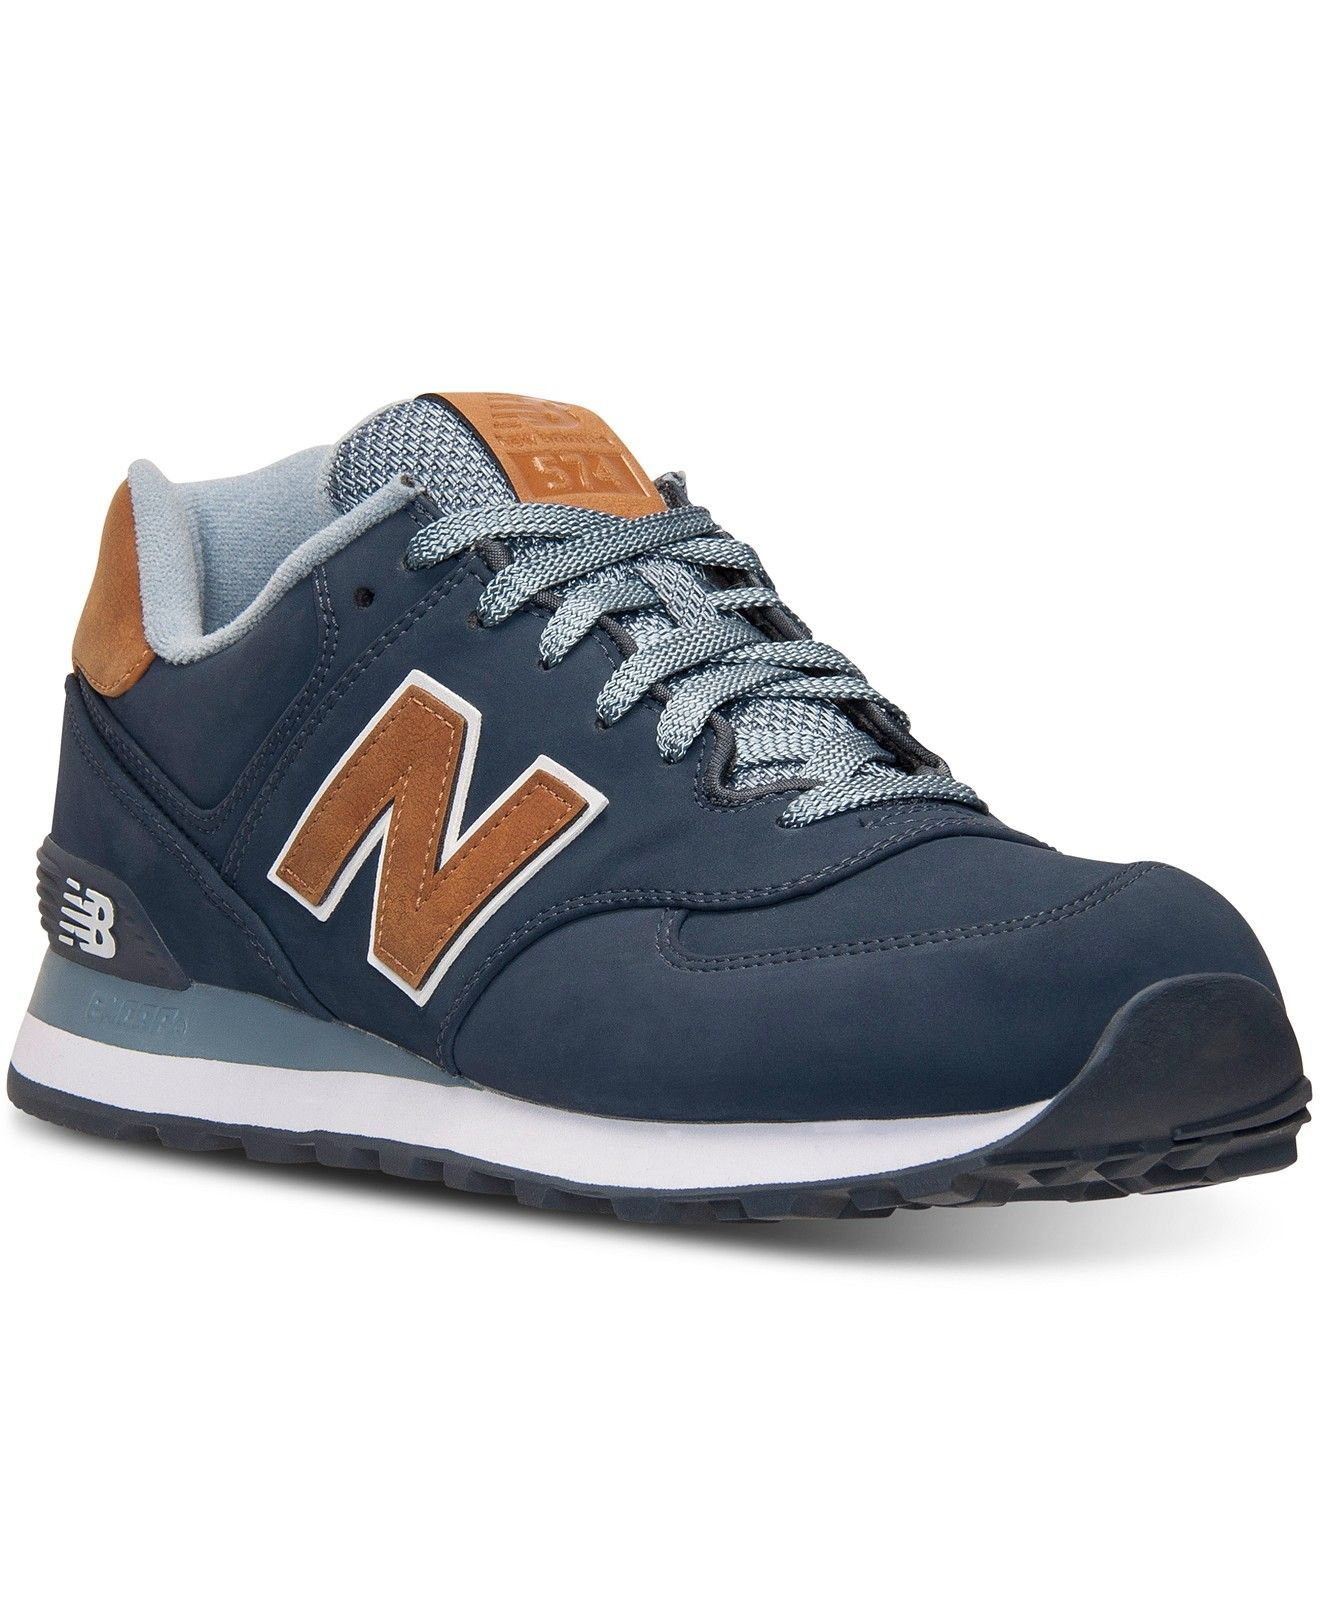 5aee1d150cd7 New Balance Men s 574 Casual Sneakers from Finish Line - Finish Line  Athletic Shoes - Men - Macy s